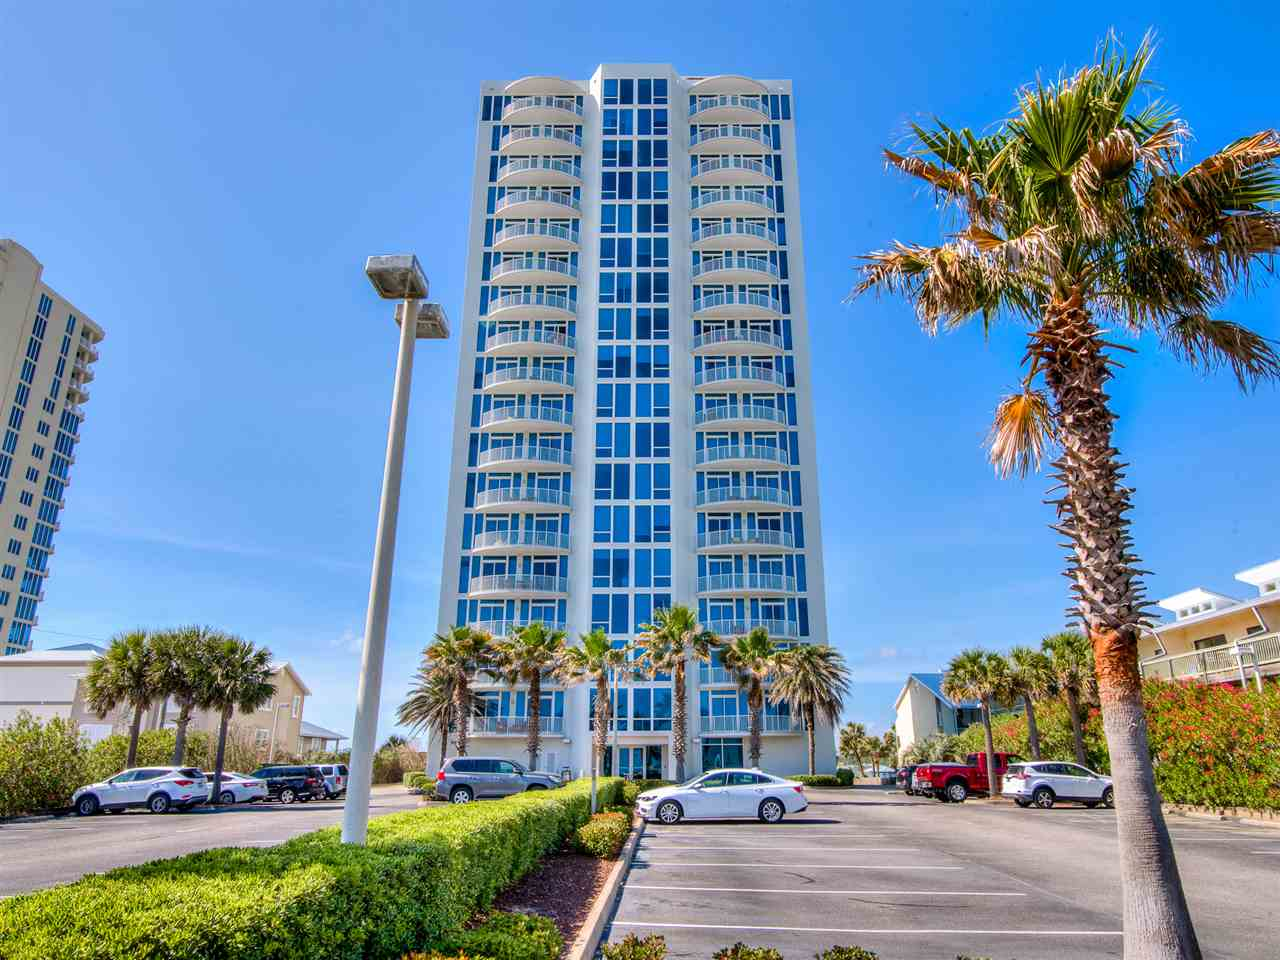 Bel Sol Condominium, Gulf Shores Alabama Real Estate Sales